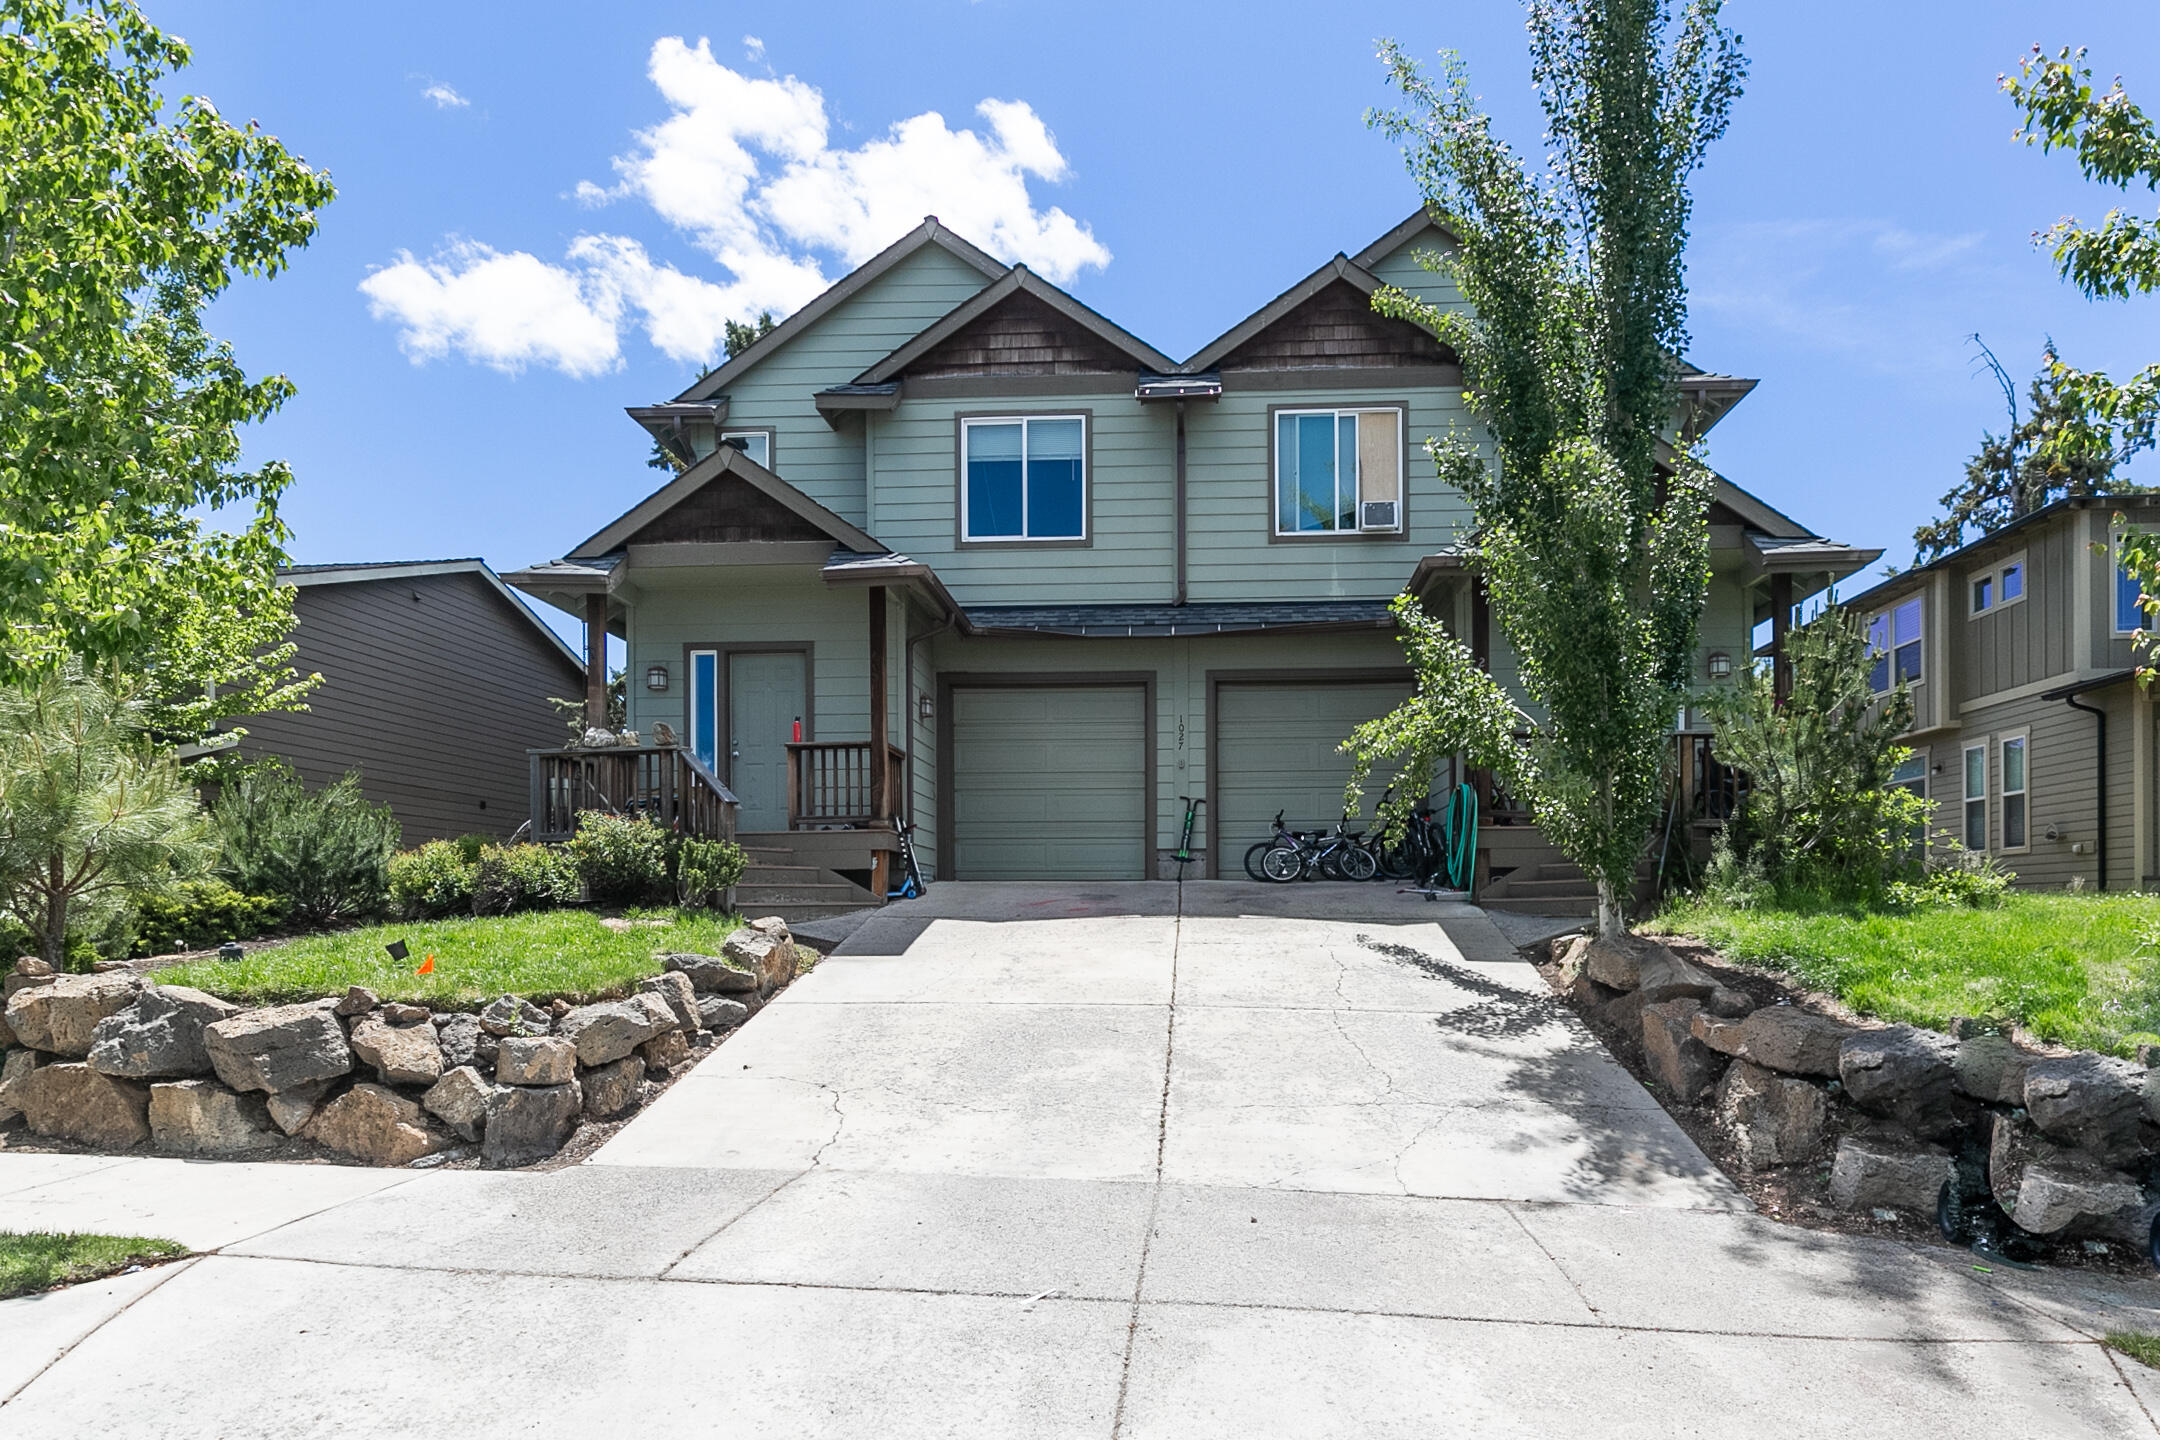 This wonderfully located NE Bend duplex features 2 mirrored units. Both 3 Bedroom 2.5 baths. The units have 1,366 Sq. Ft. of spacious living area with open concept kitchen and living room. the deck off of the living area provides great outdoor living/dining environment.